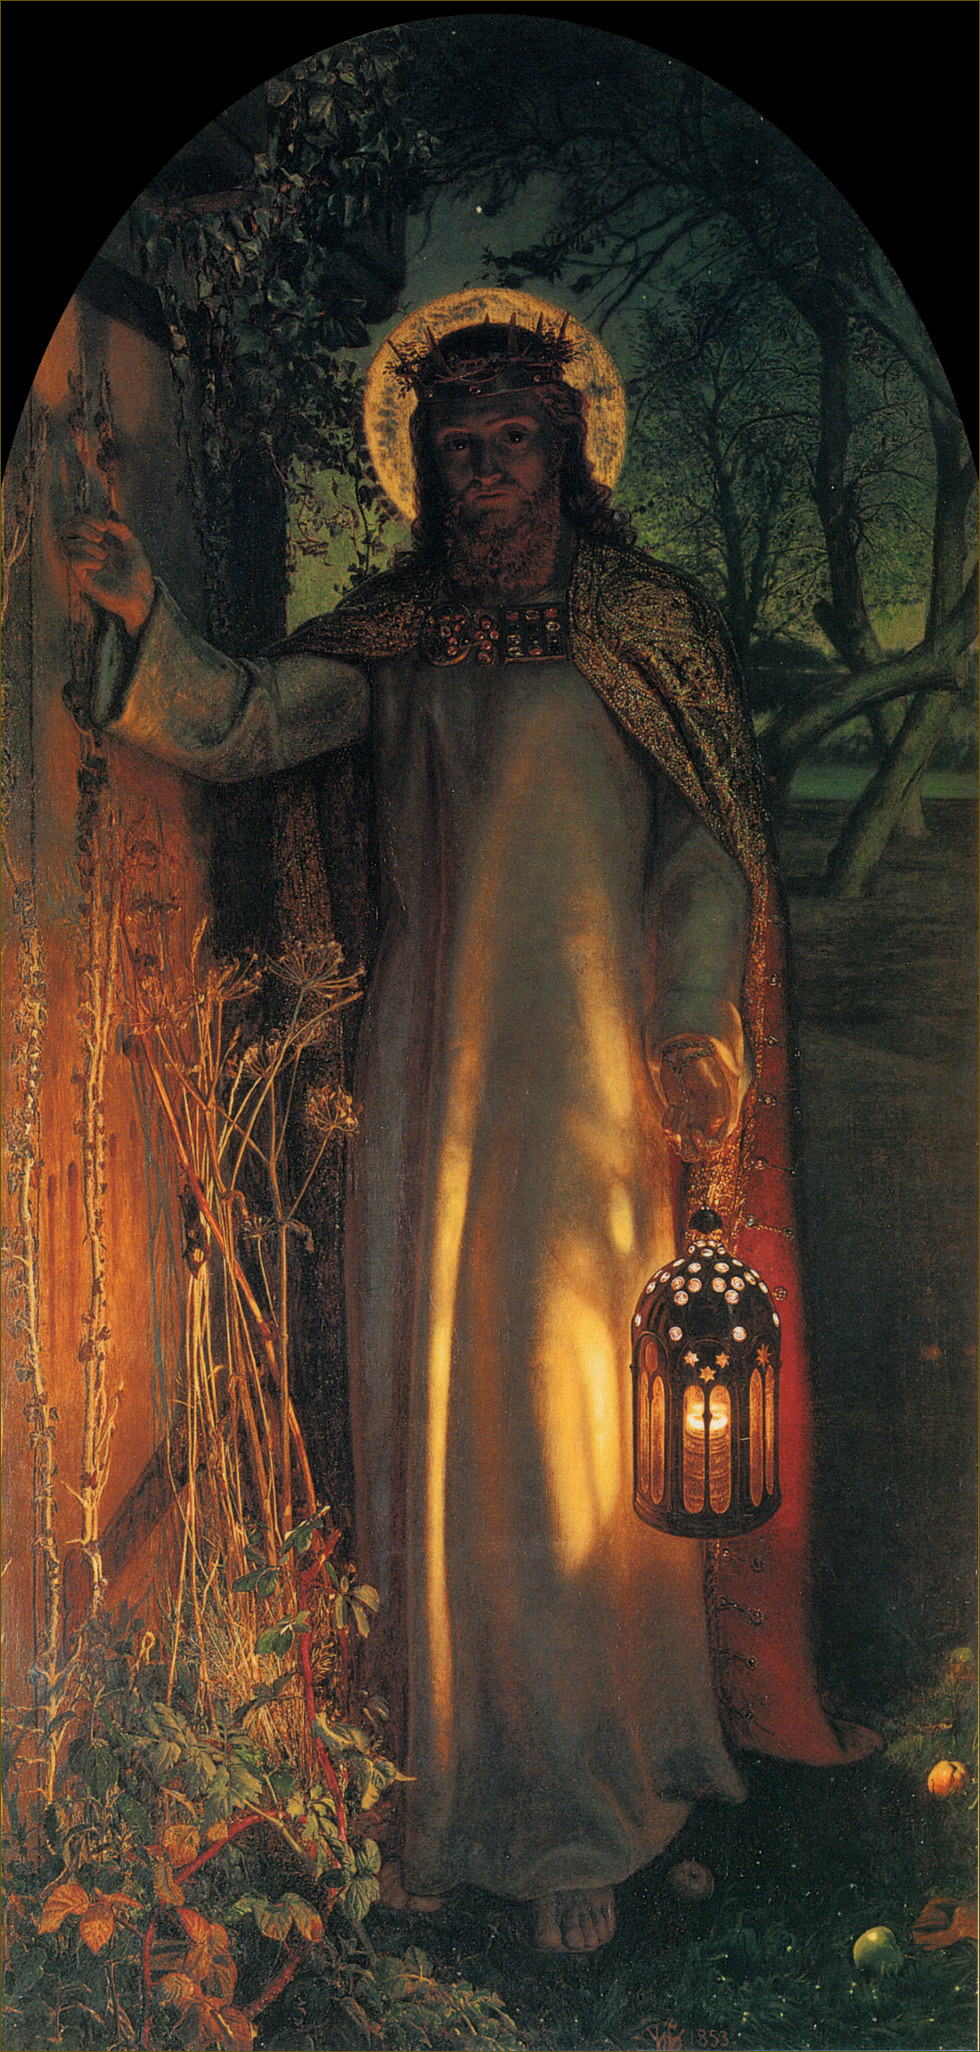 La Lumière du Monde, par William-Holman Hunt (1853)